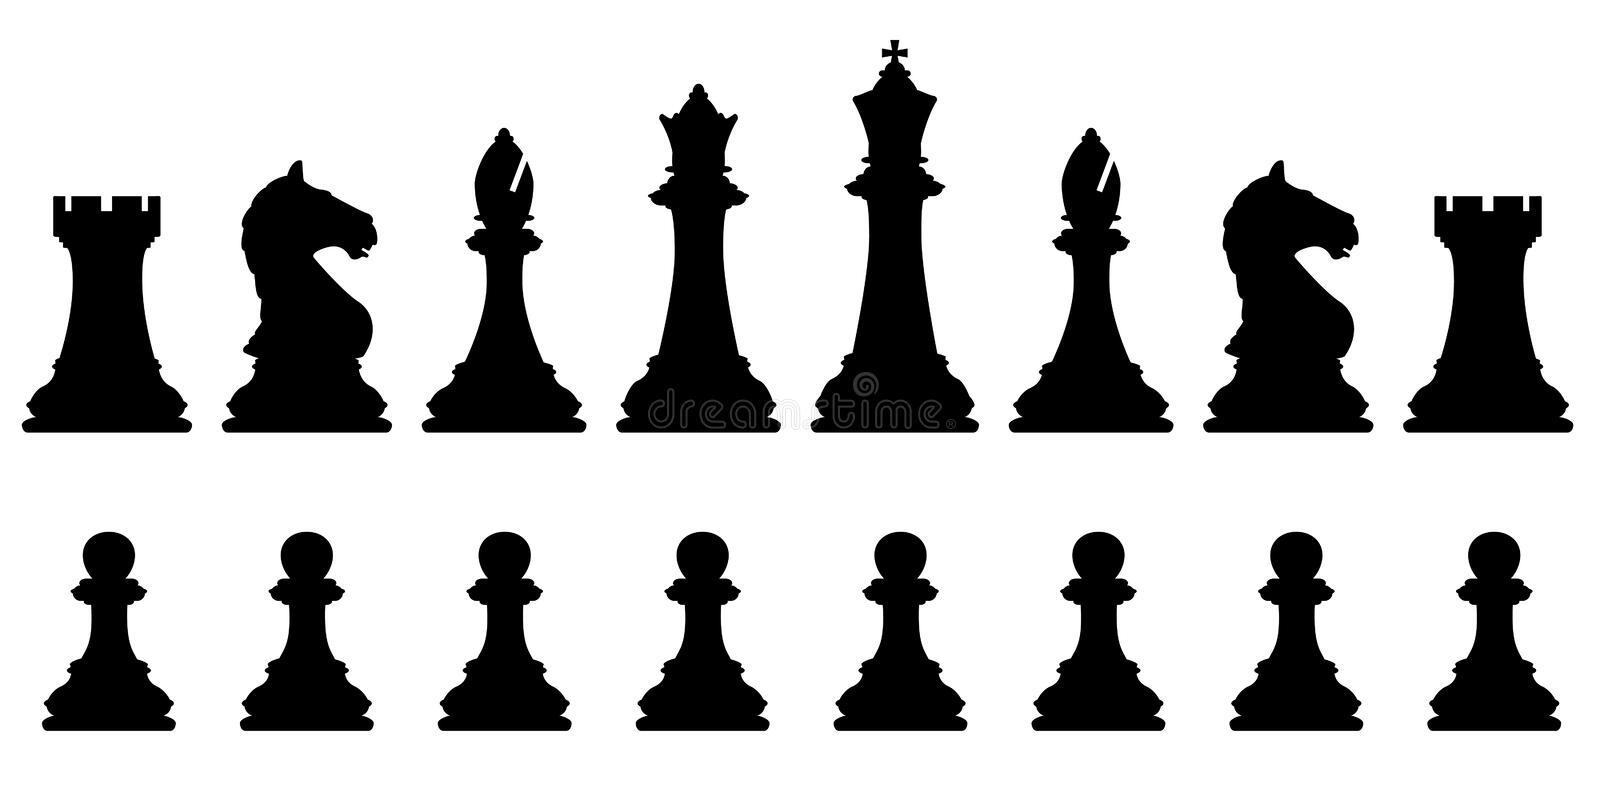 Chess set. Editable vector silhouettes of a set of standard chess pieces